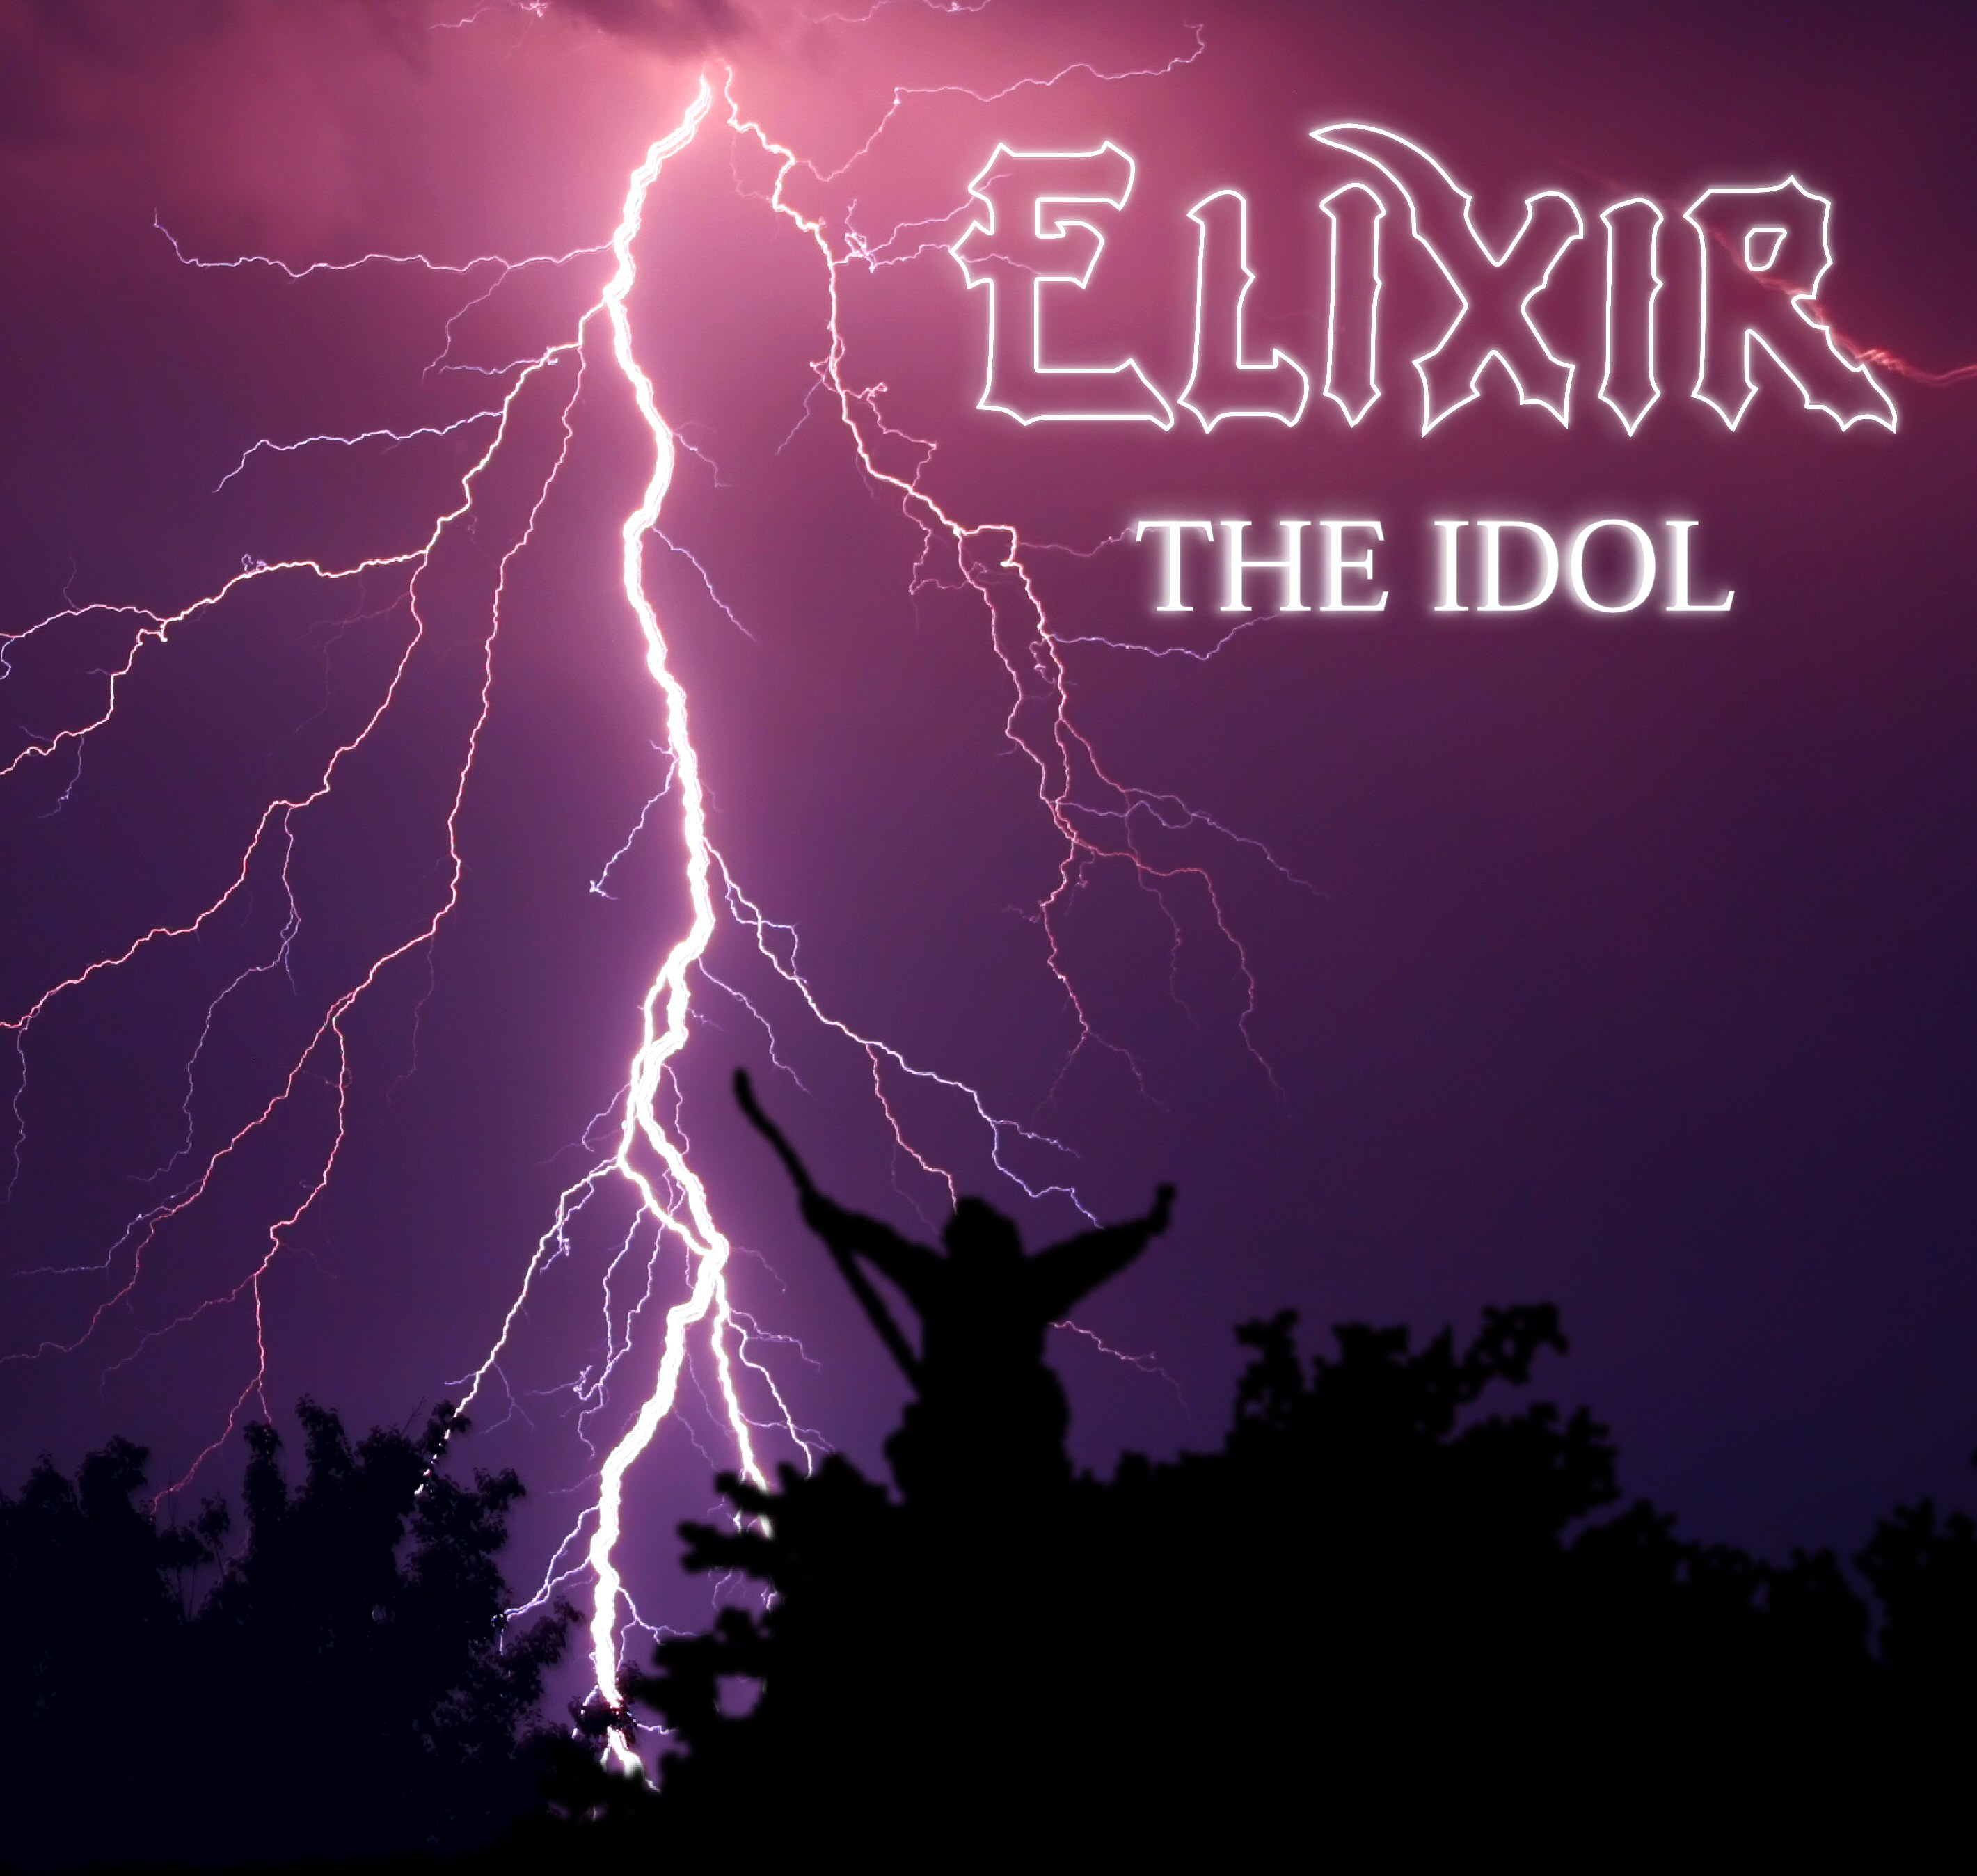 The Idol cover